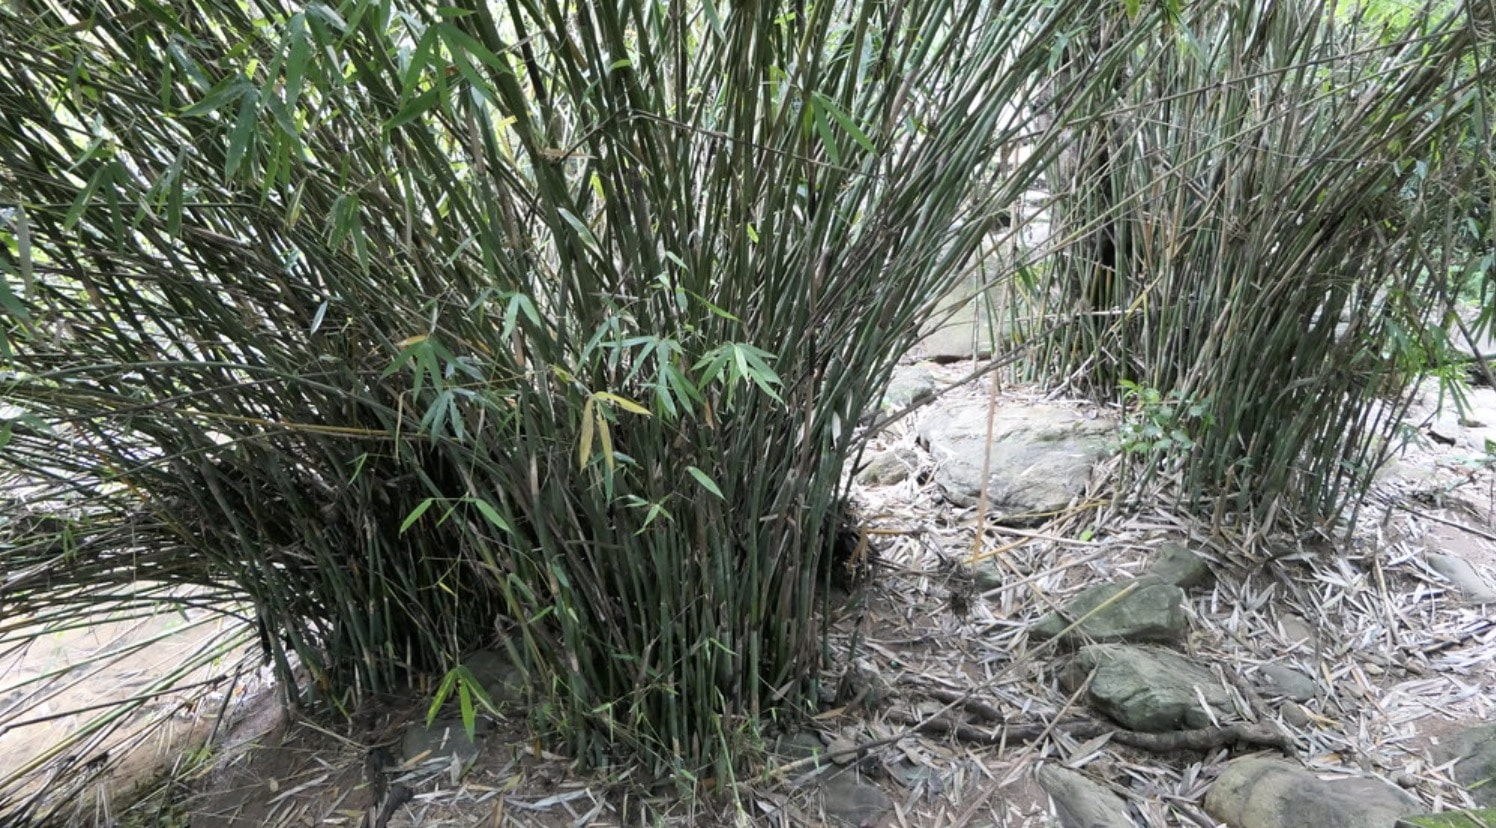 The clumping bamboo